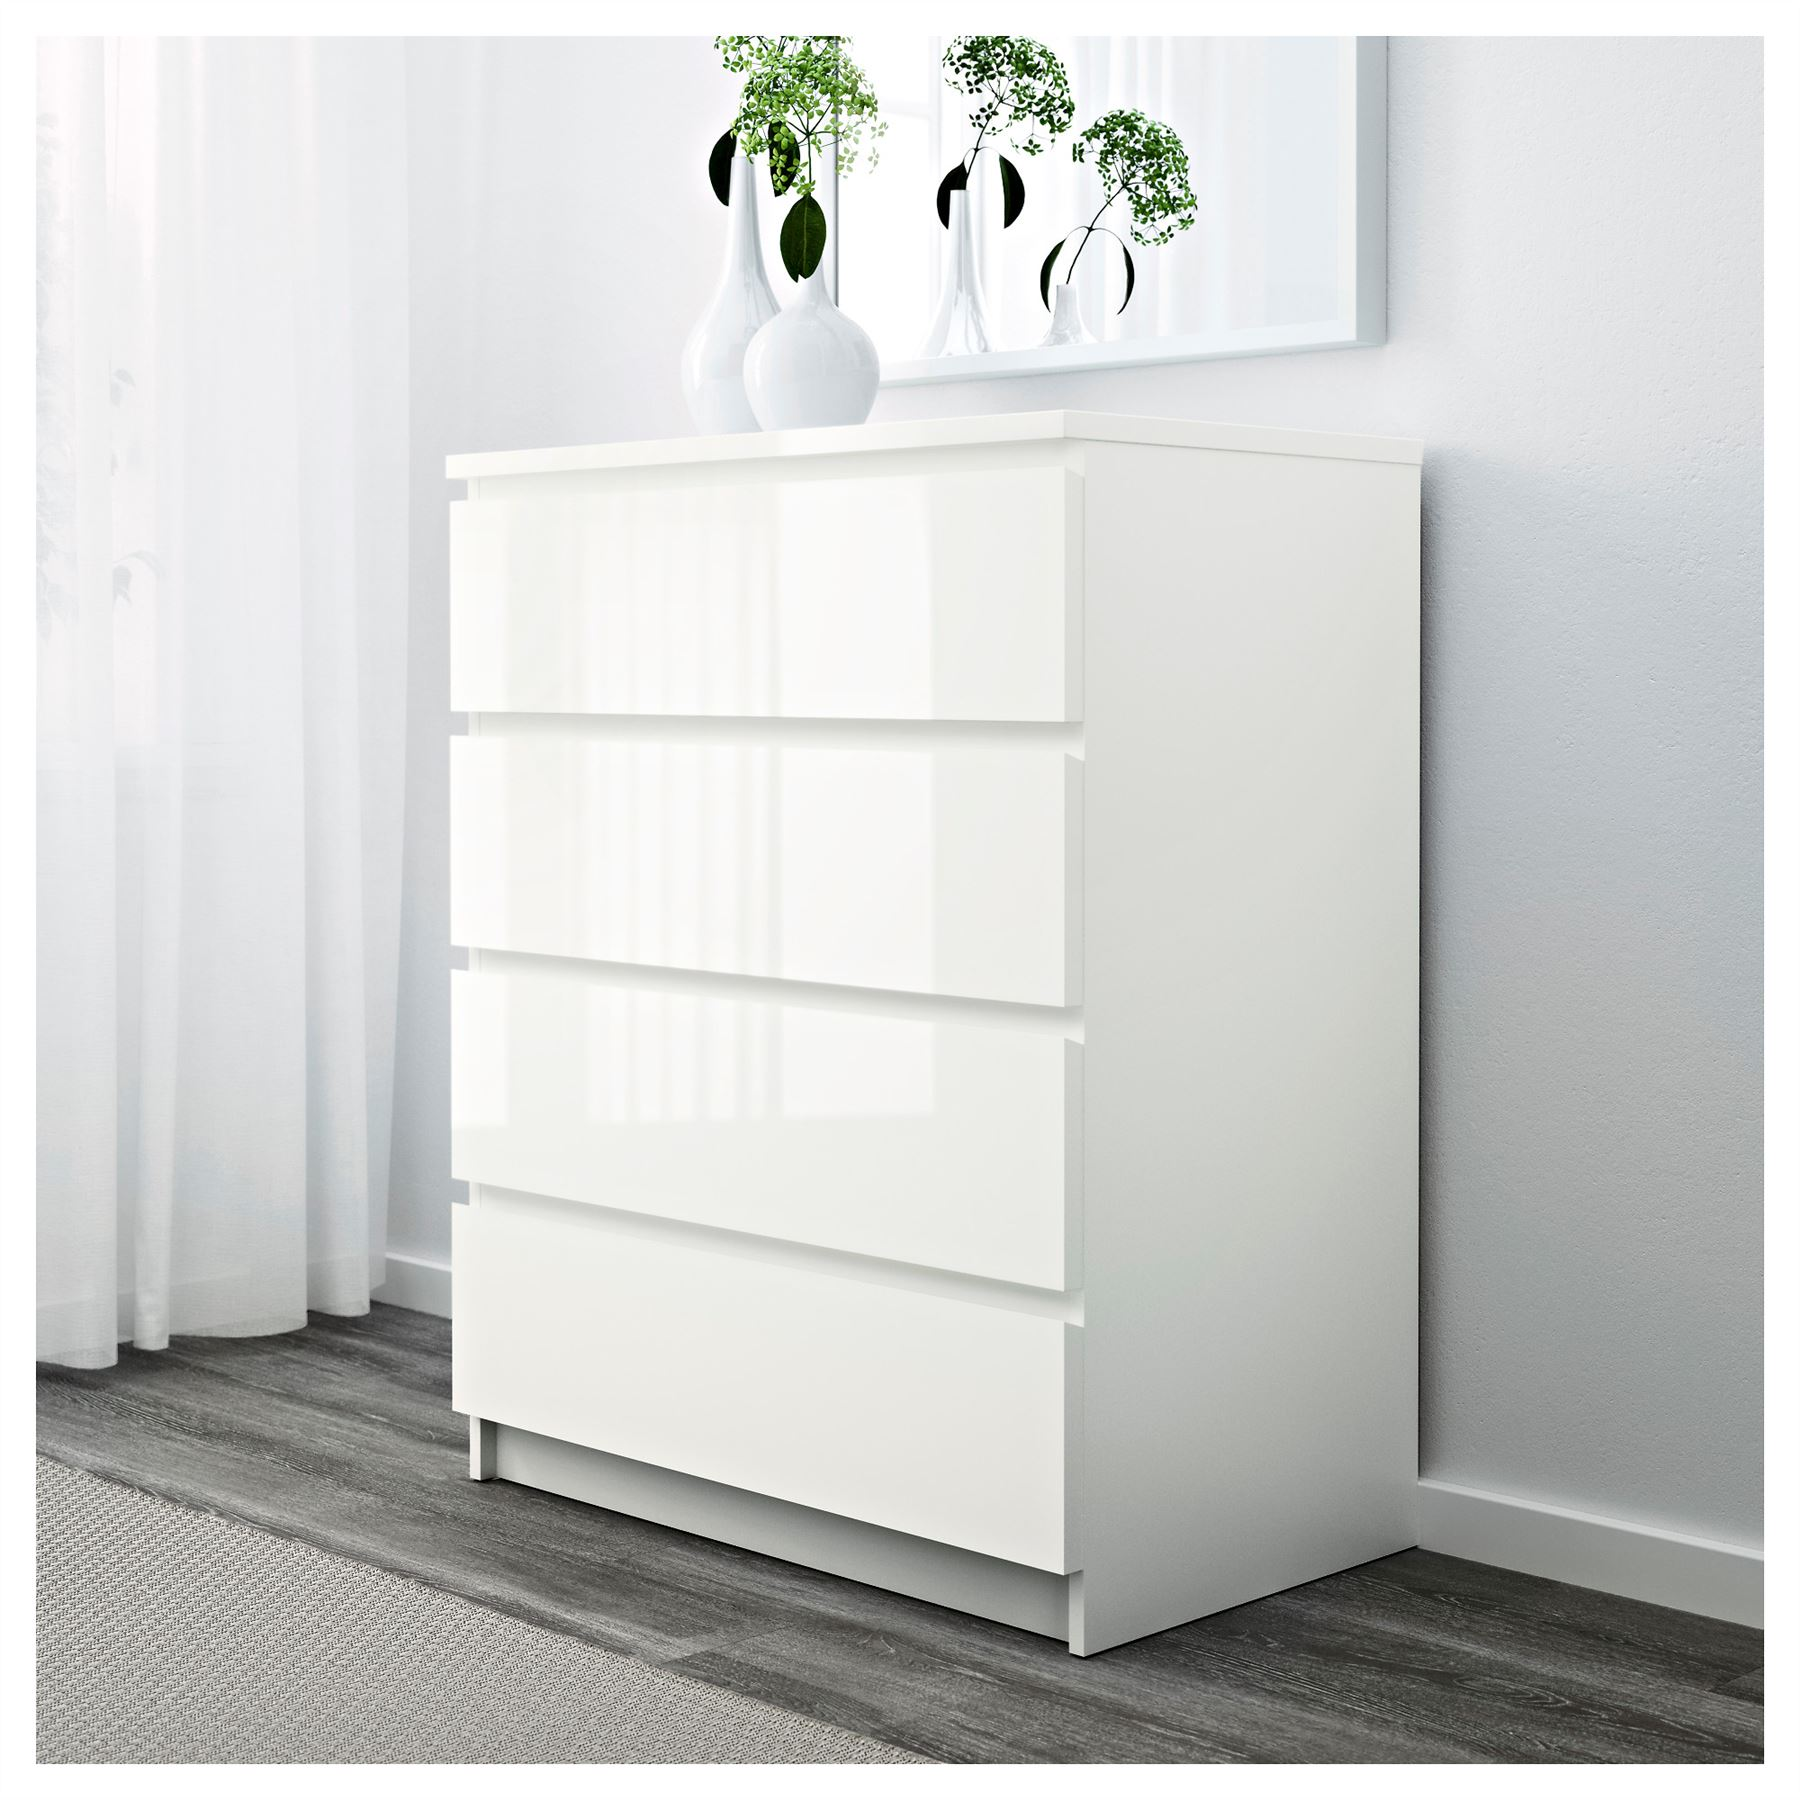 White Gloss Drawers Ikea Malm Chest Of 4 Drawers 80x100cm White High Gloss